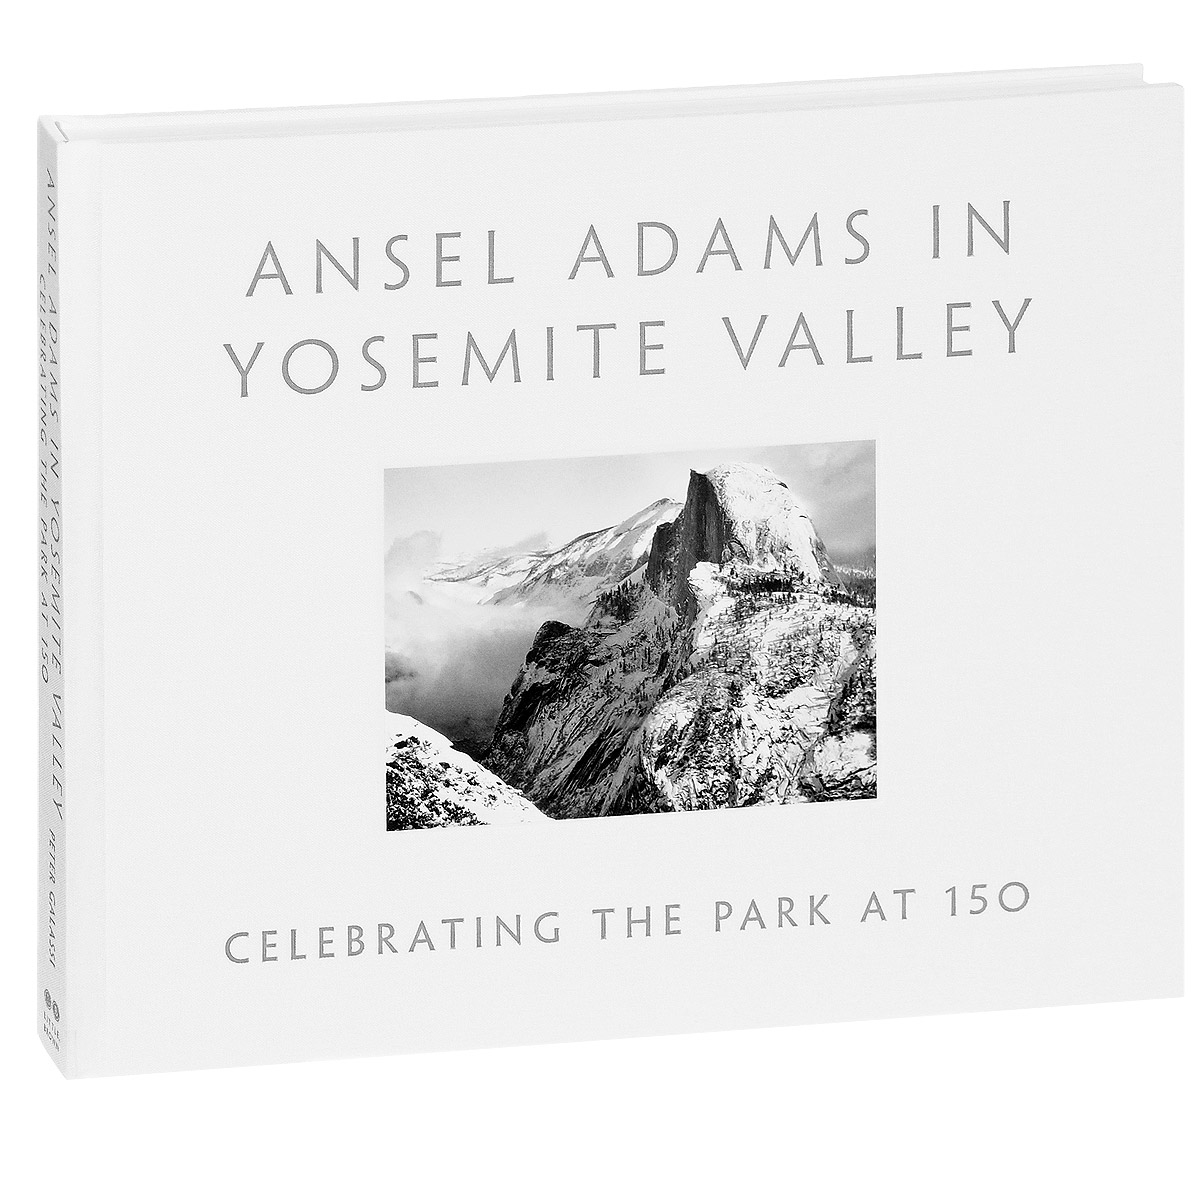 Ansel Adams in Yosemite Valley: Celebrating the Park at 150 bryan adams live at slane castle